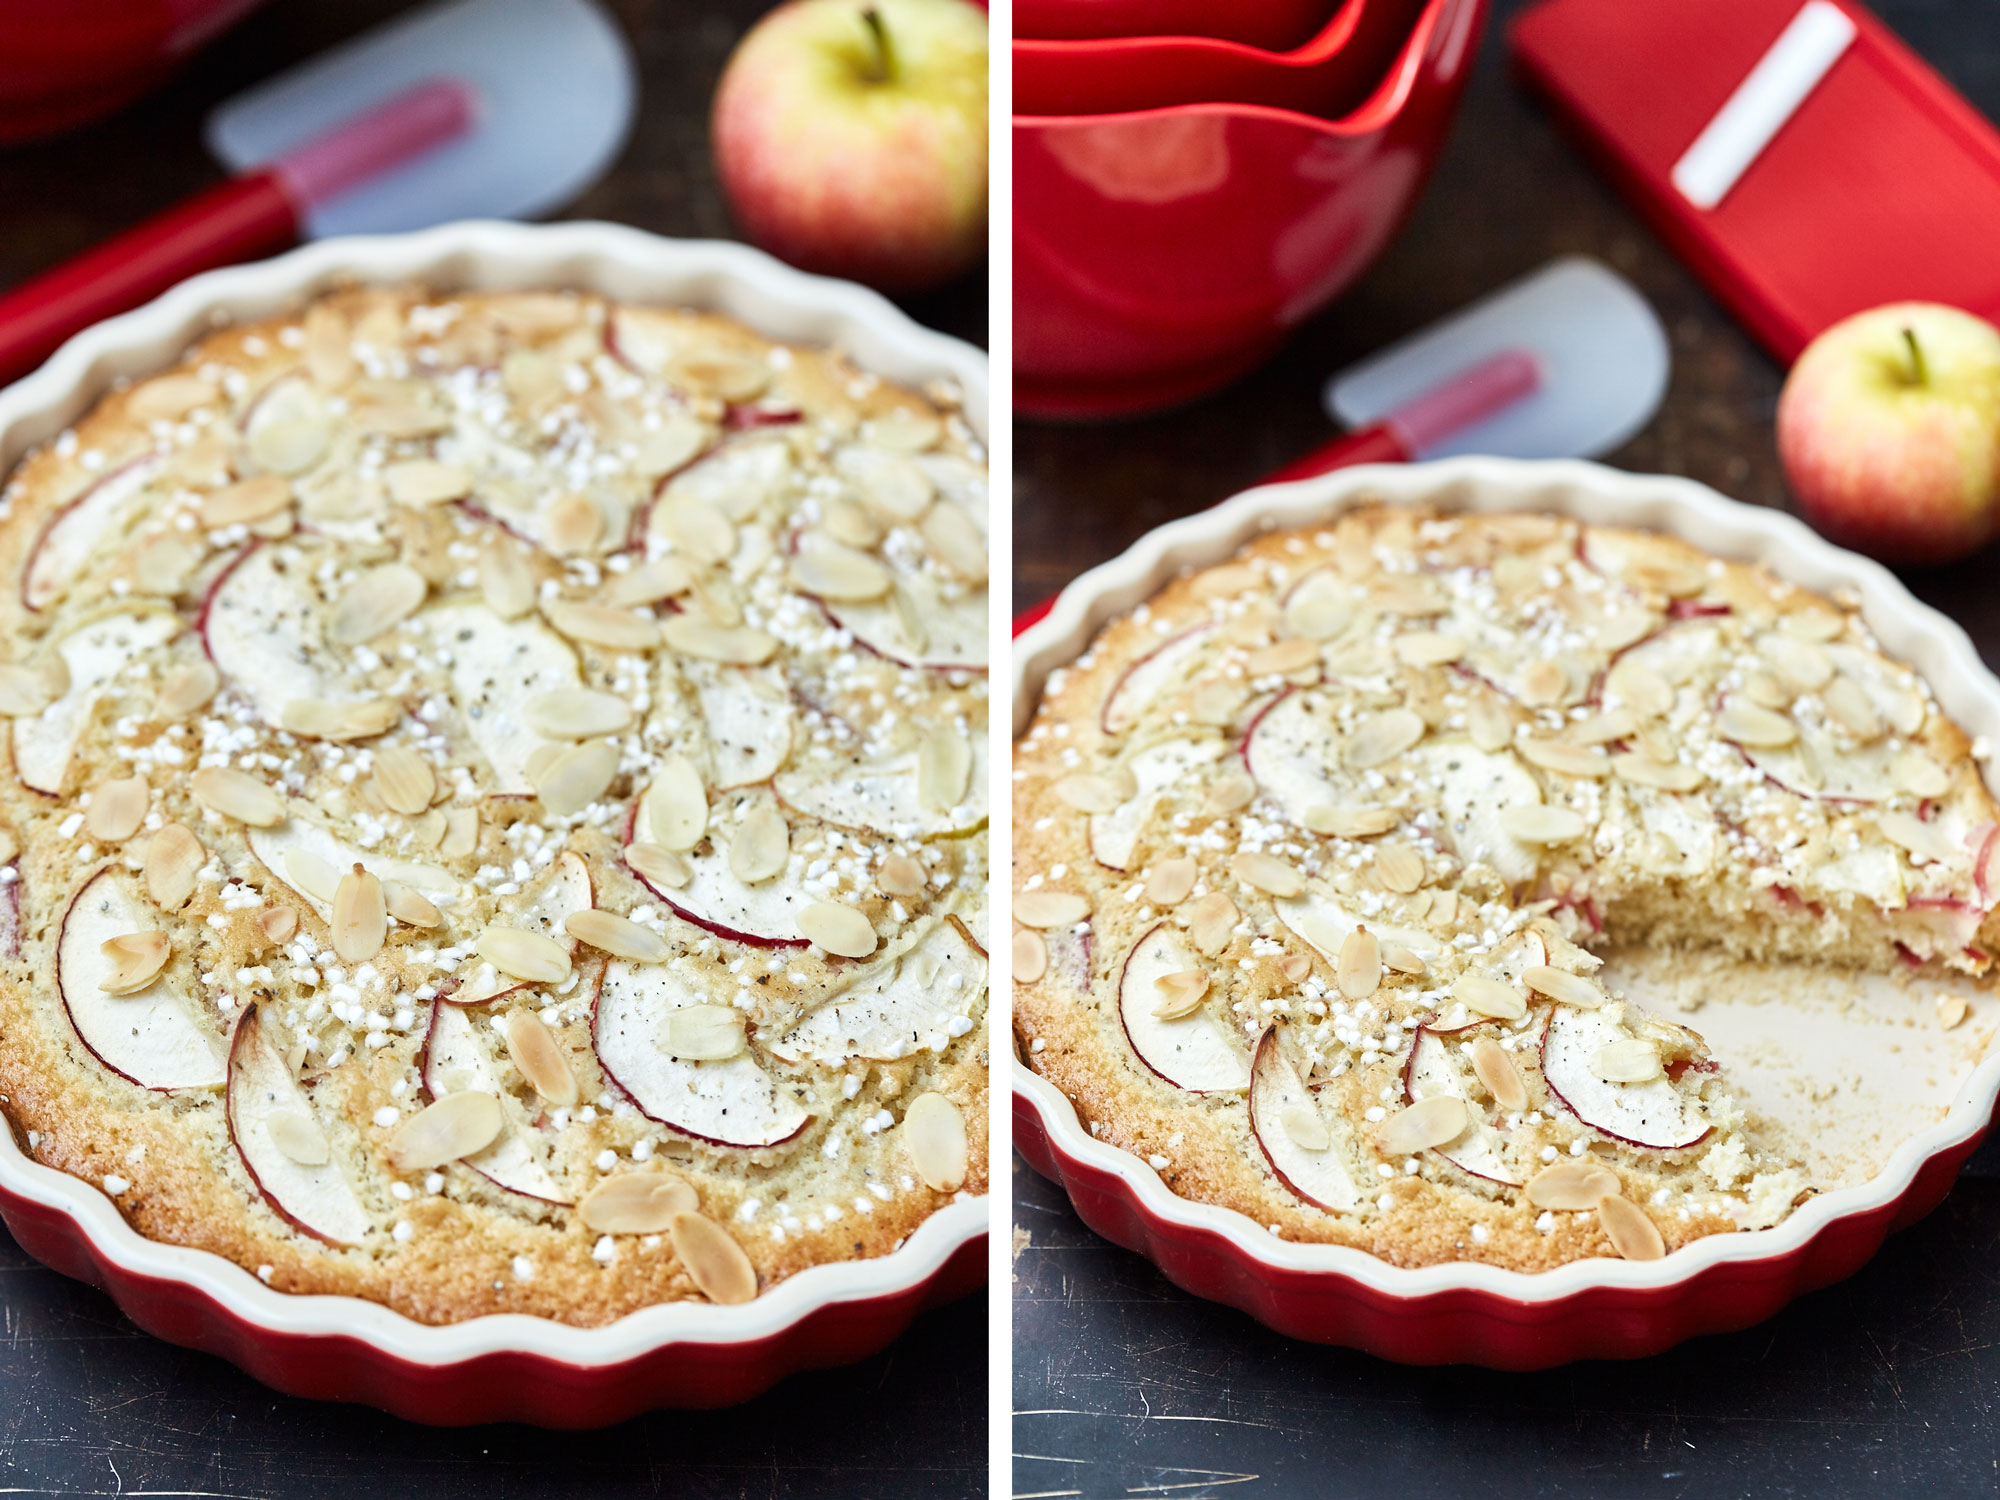 Apple Cake Made With Sliced Apple Inside It